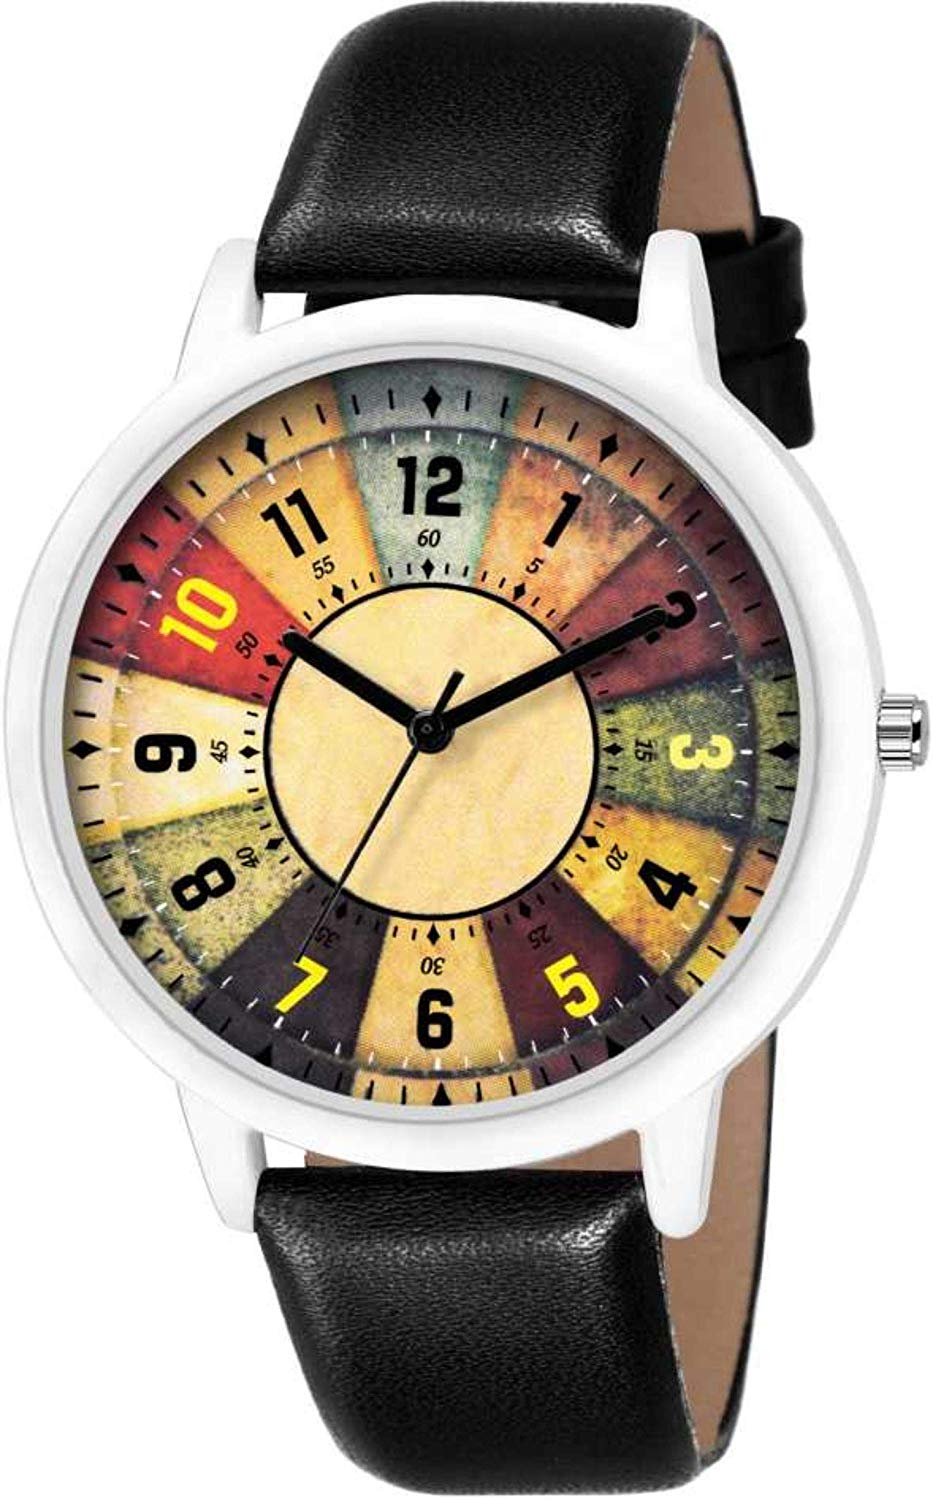 DealYEP Black Leather Strap Luxury Fashion Watch for Boys & Girls DY123